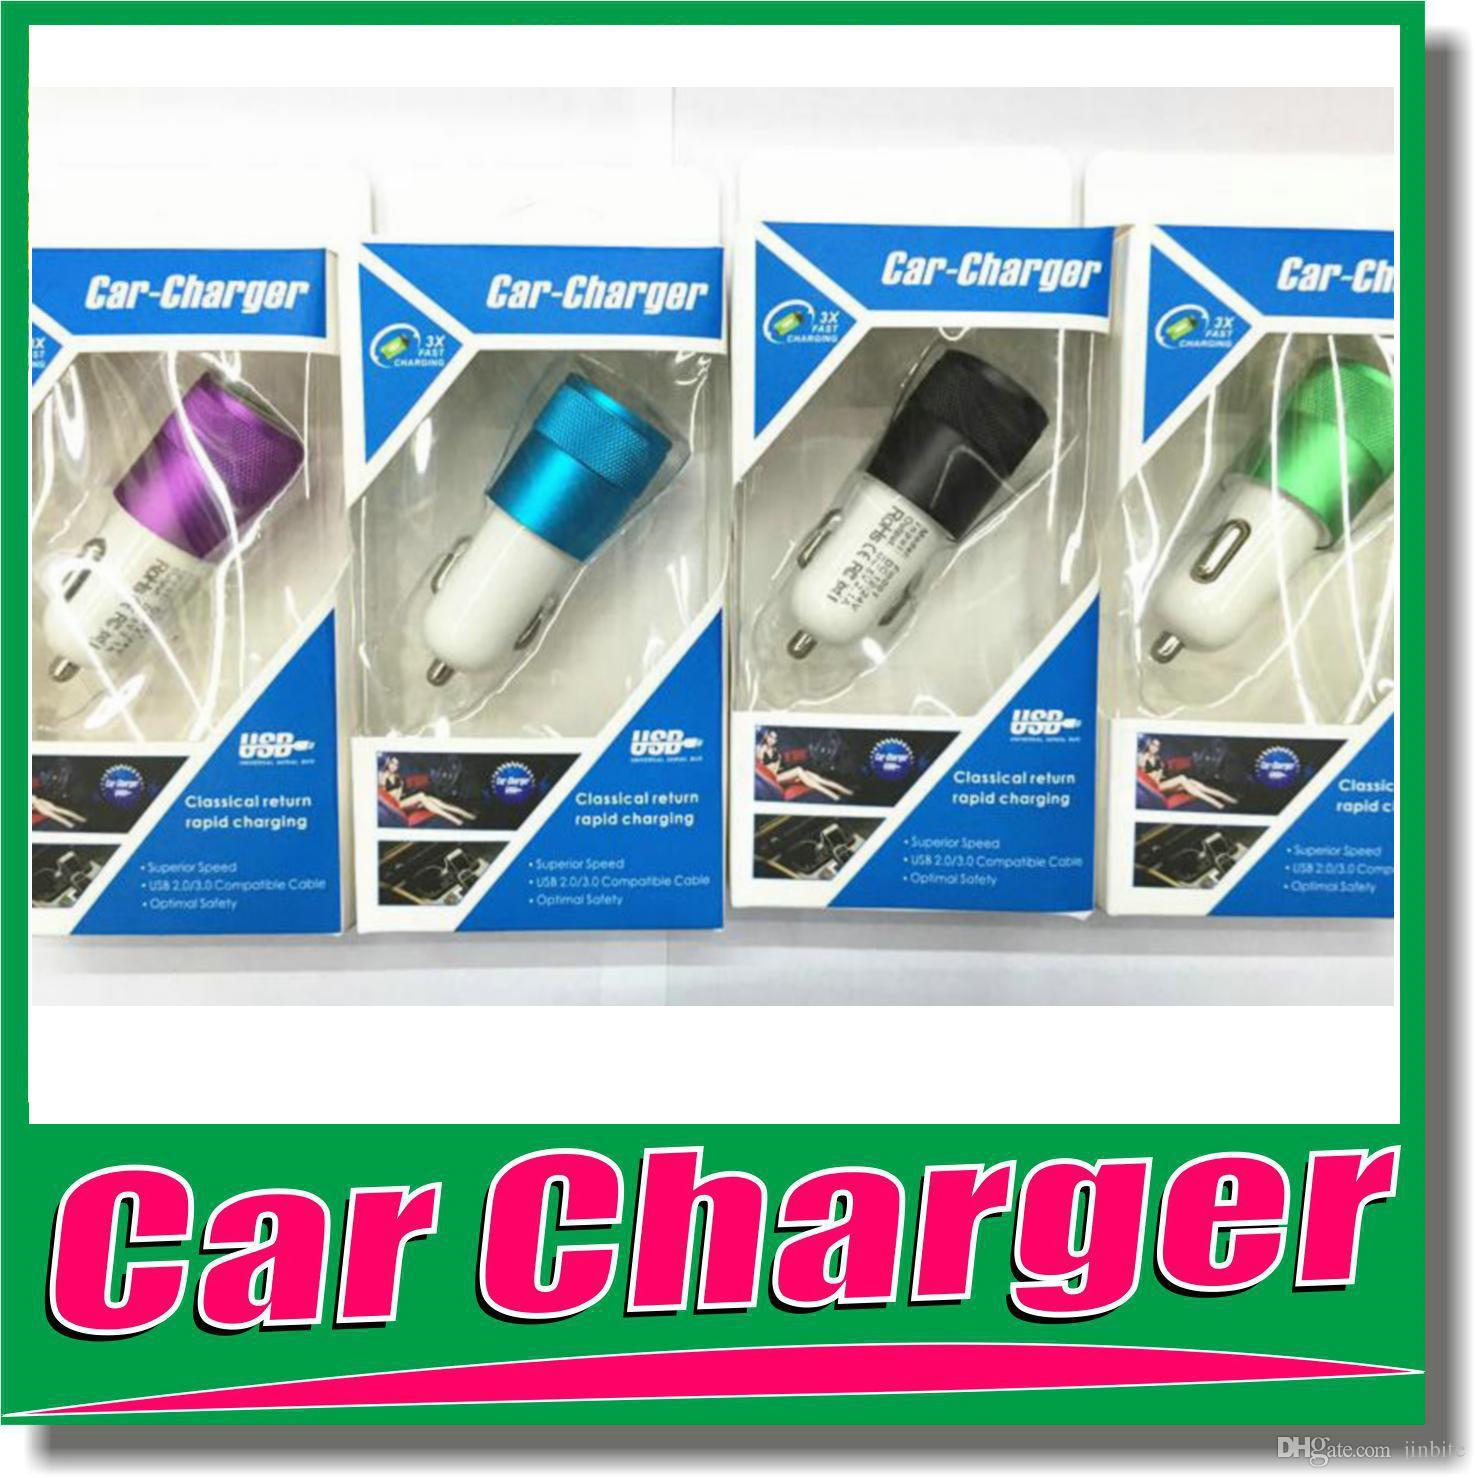 Best Metal Dual Usb Port Car Charger Universal 12 Volt 1 2 Amp Large Ampamp For Iphone 5 6s Ipad Samsung Galaxy Htc With Retail Box Om G7 Power Bank Charging